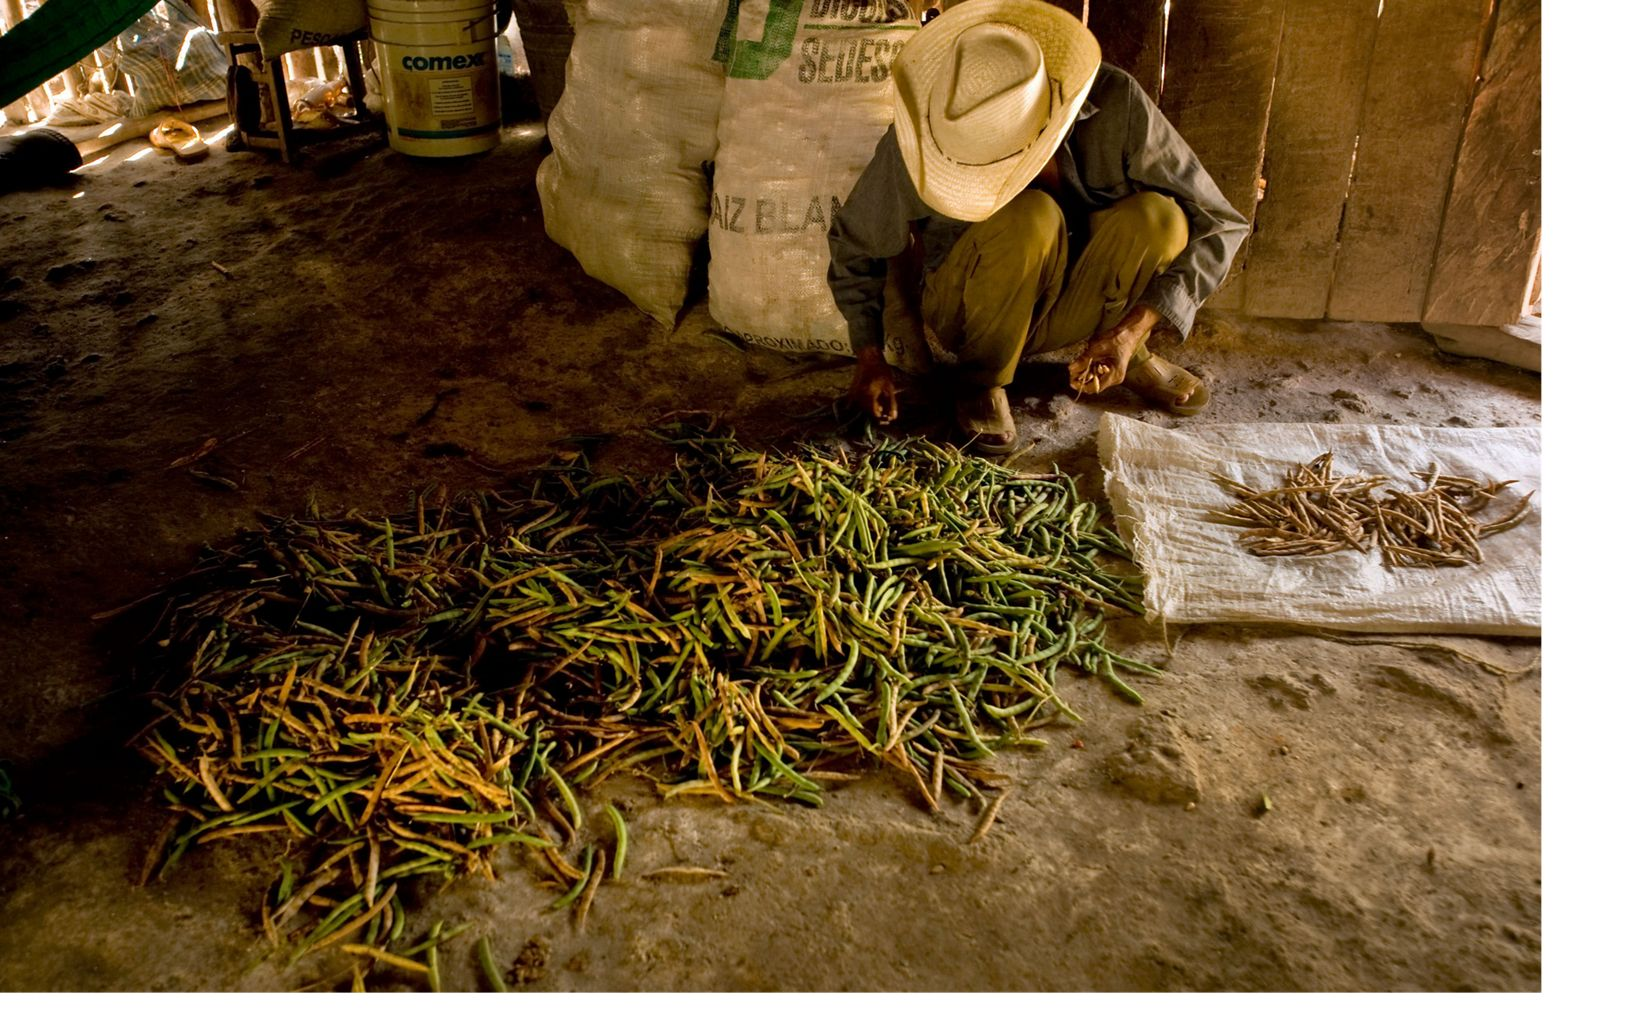 An indigenous man sorts beans in a hut at the ejido Veinte de Noviembre situated in the lush Maya Forest of Mexico's Yucatan Peninsula.  An ejido is a self-governing land cooperative unique to Mexico.